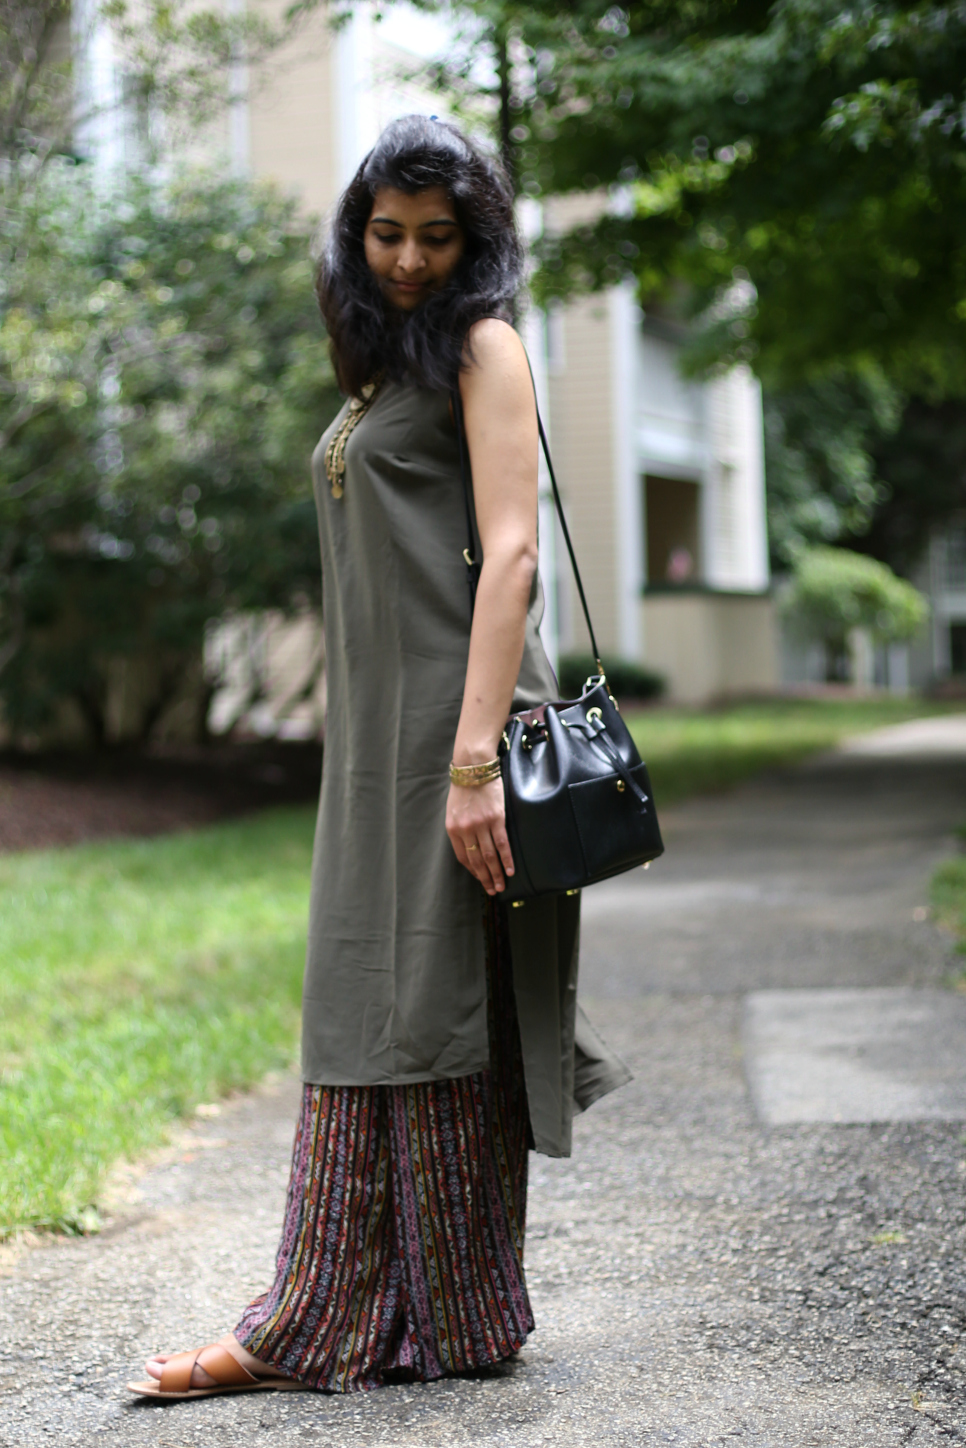 How To Achieve A Modern Indian Look With Western Pieces